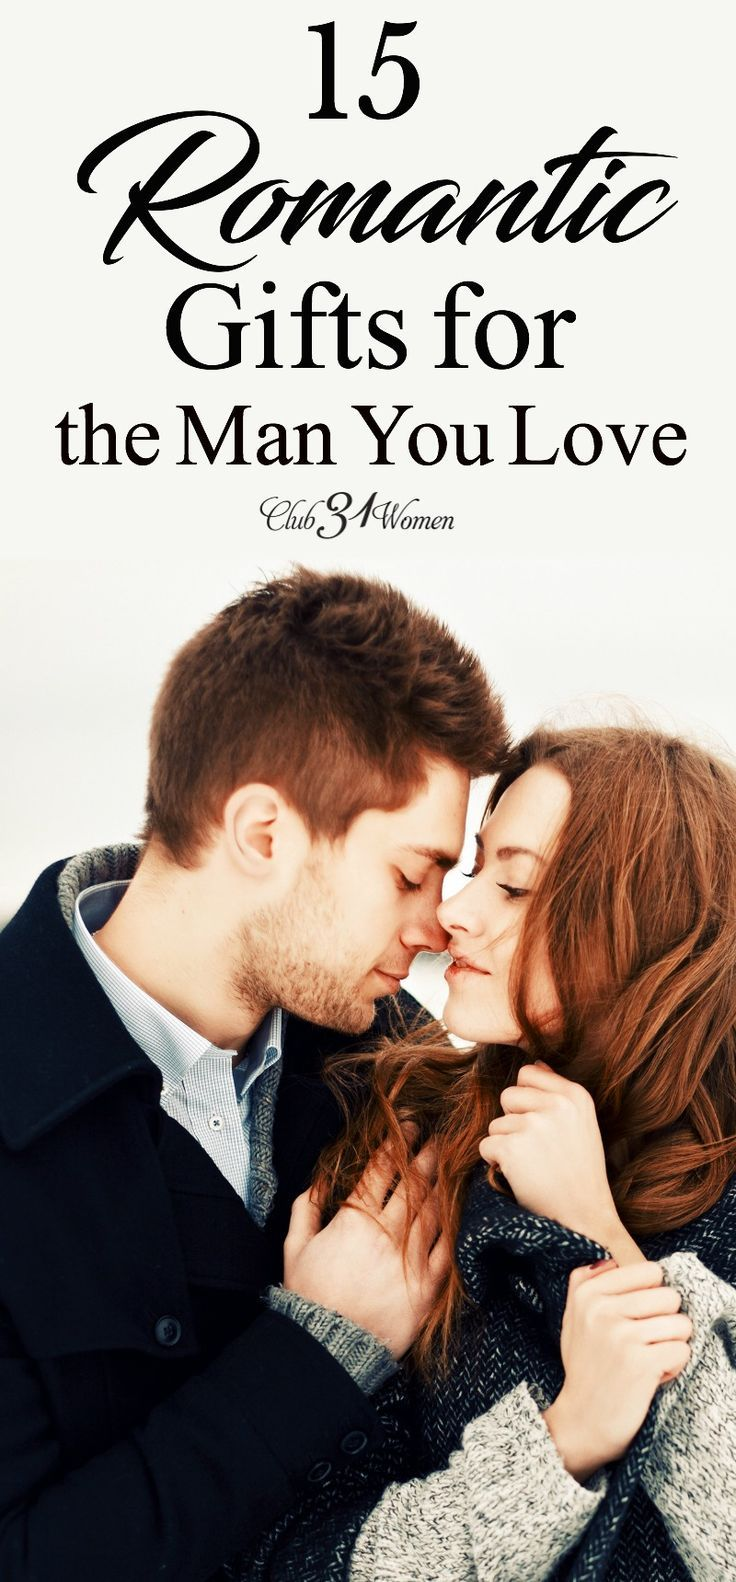 5d3a2ab082d4d Looking for a romantic gift for the man you love  Something special that he  will really enjoy and appreciate  Here are 15 affordable gift ideas just  for ...